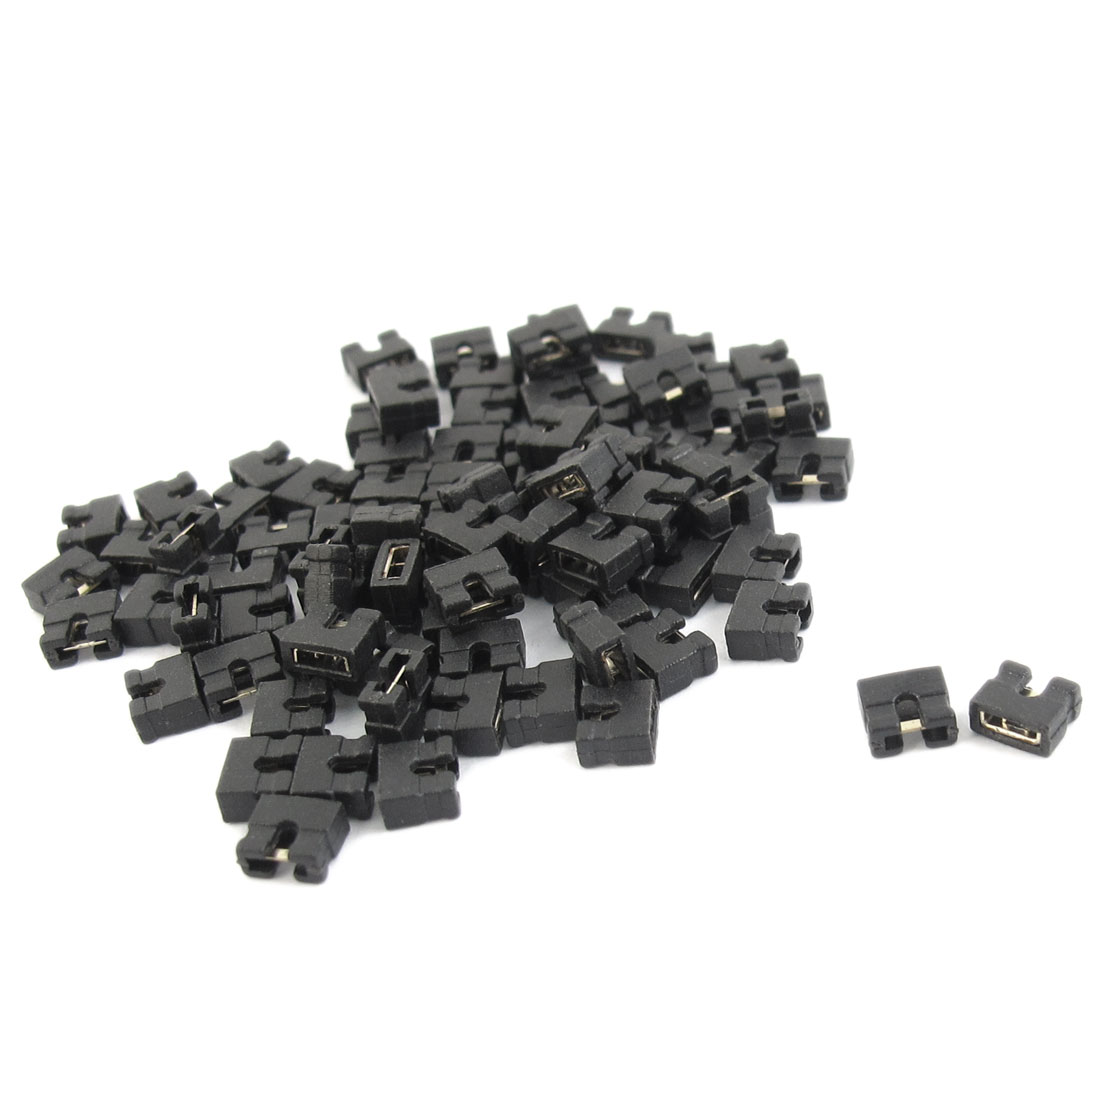 90Pcs Motherboard PCB Plugs Short Circuit Connection Jumper Caps 2.54mm